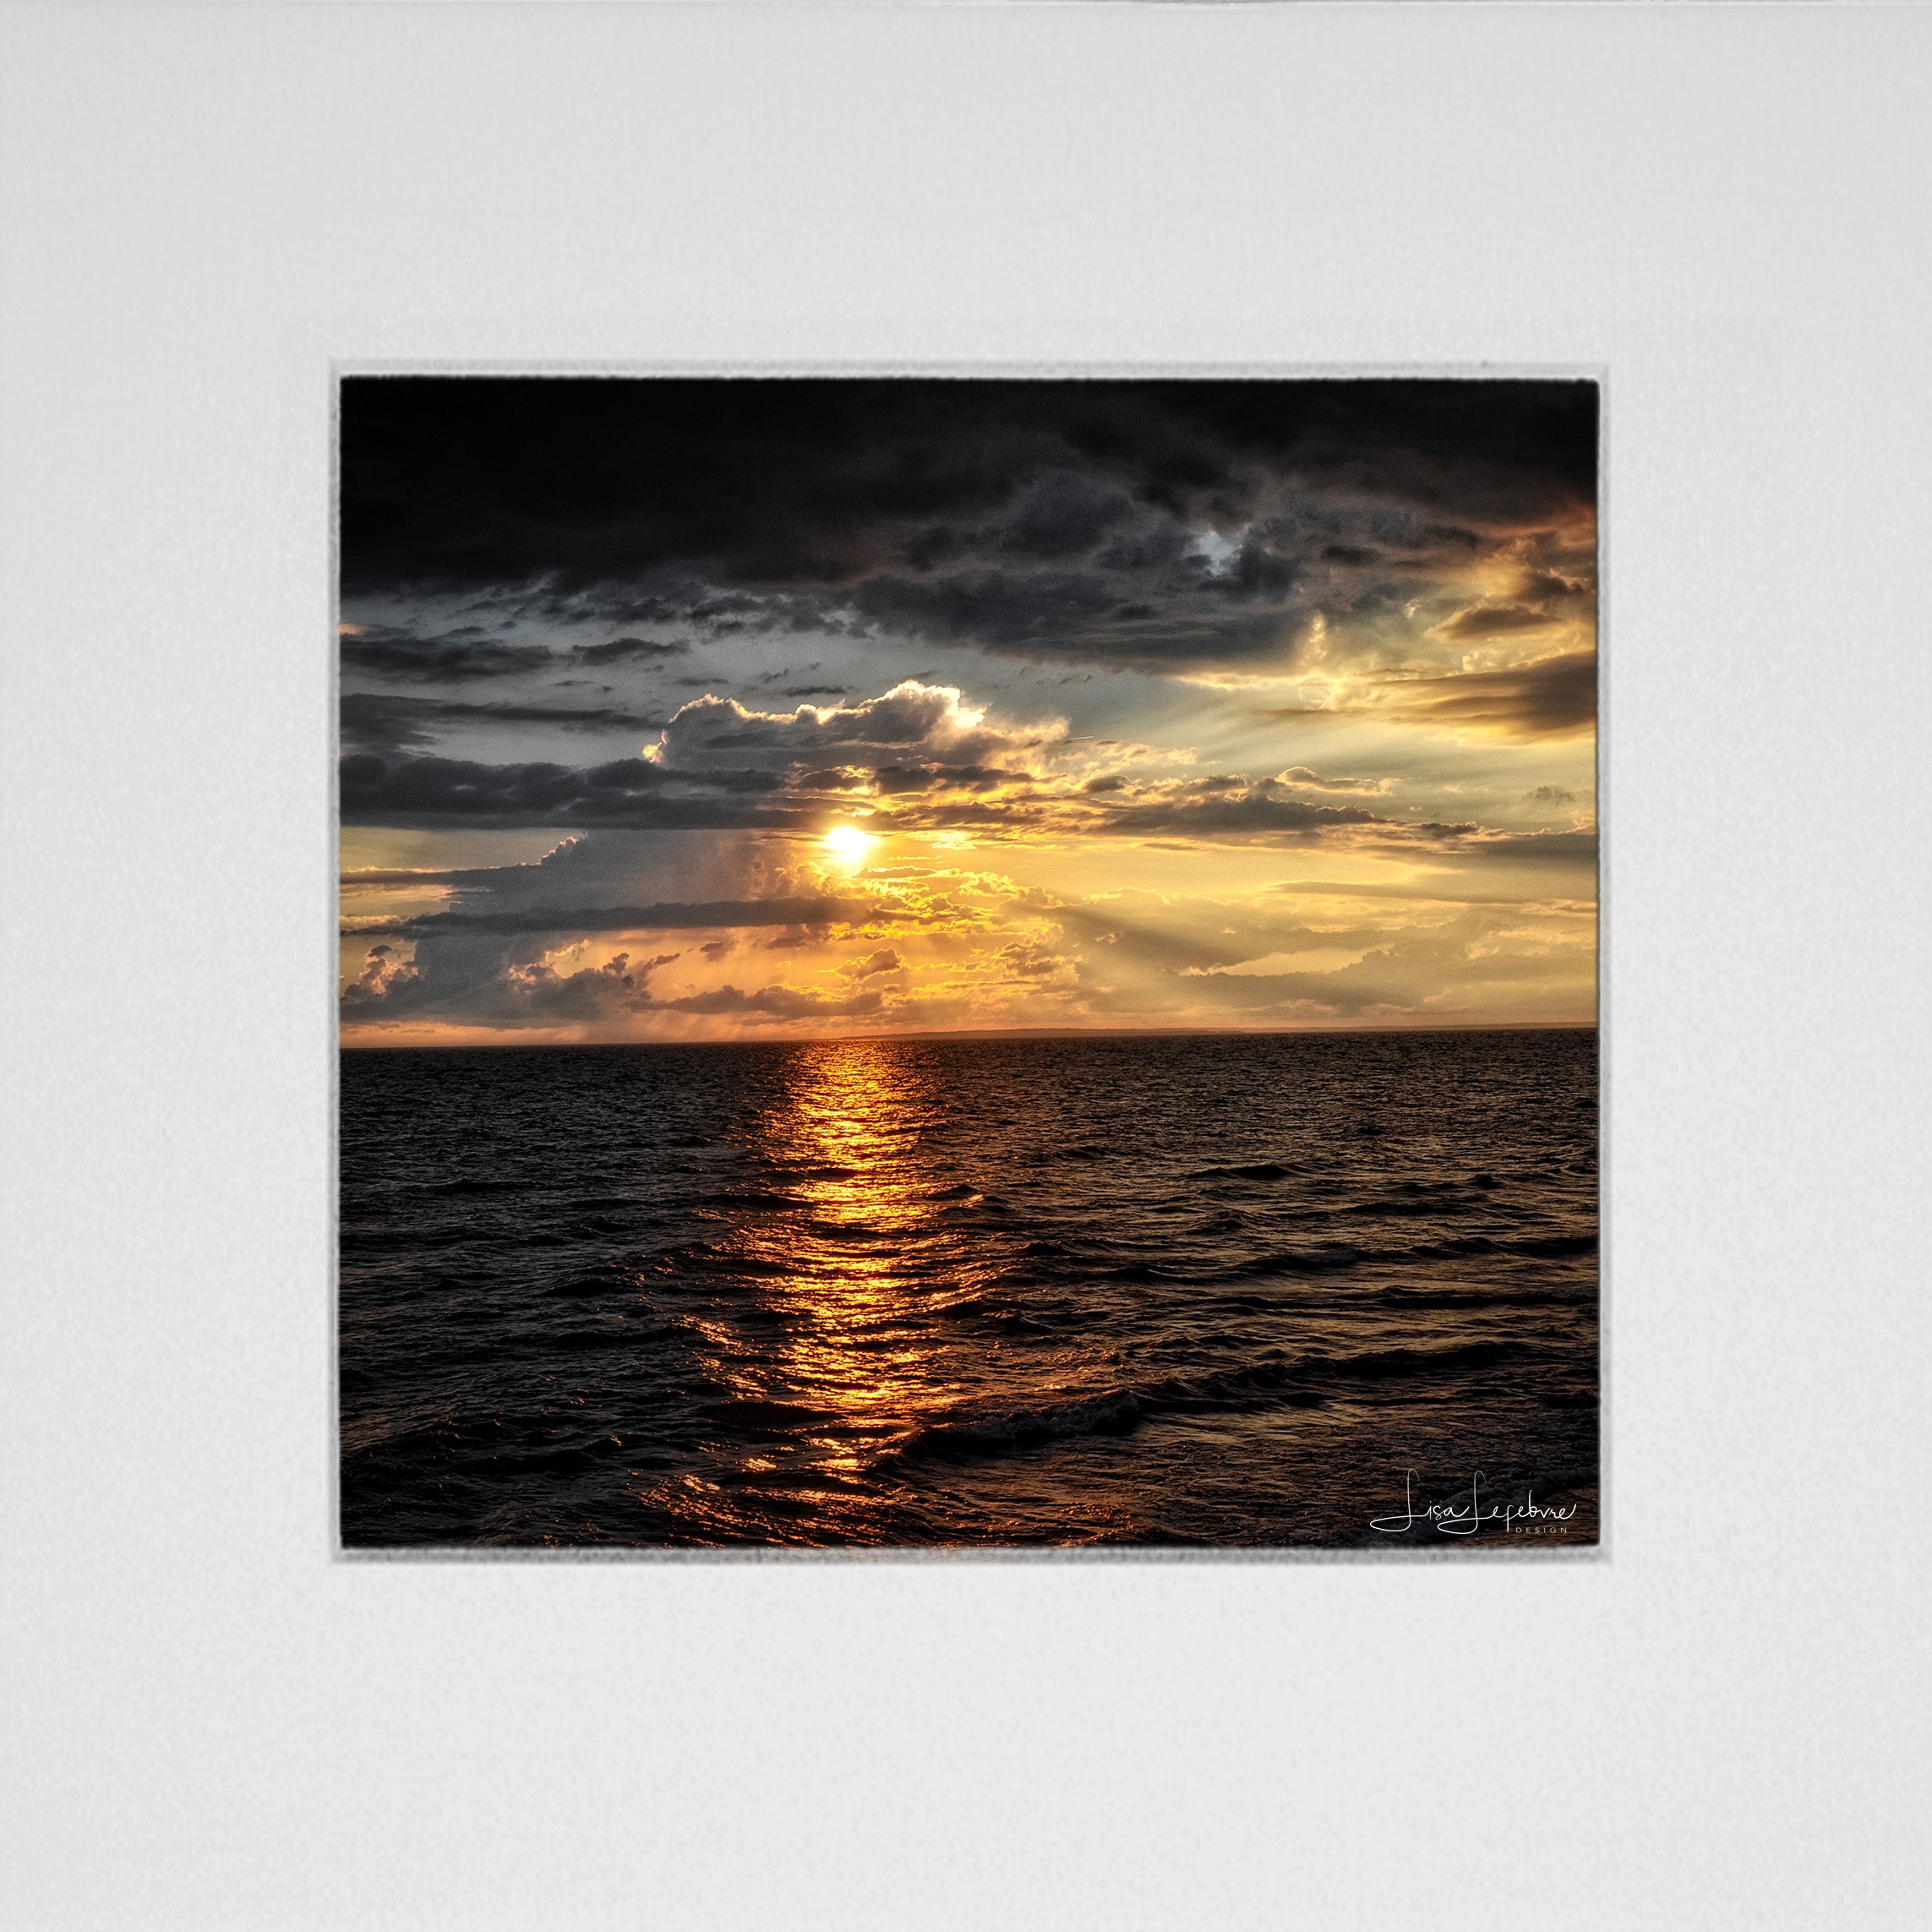 Point Prim Sunset Print - Original Photographic Print